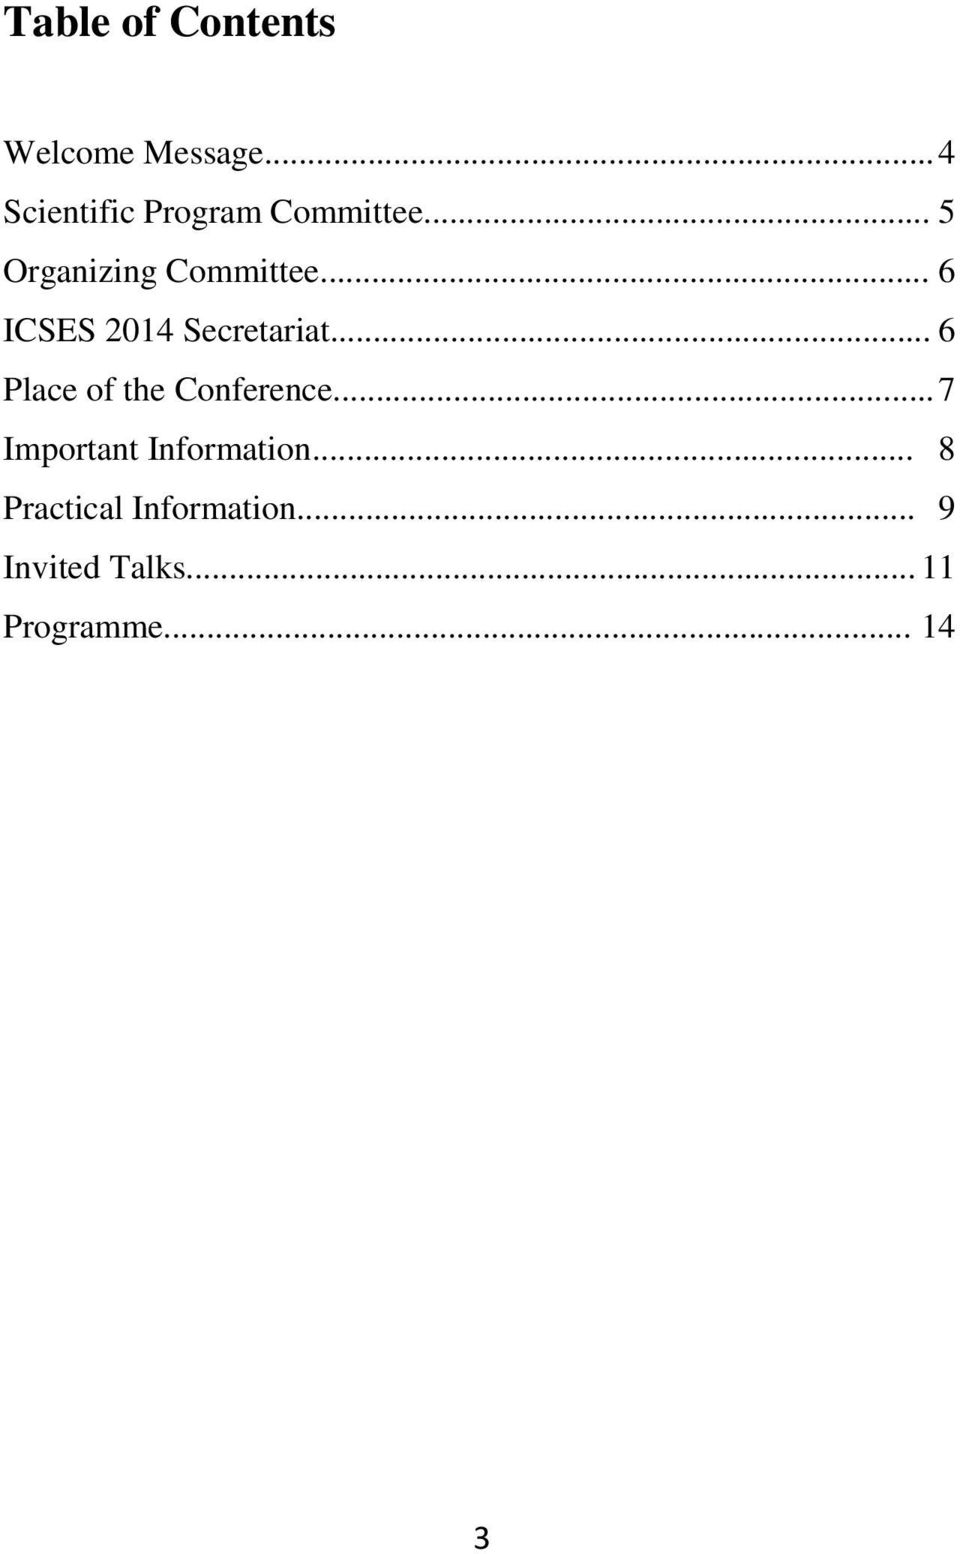 .. 6 ICSES 2014 Secretariat... 6 Place of the Conference.